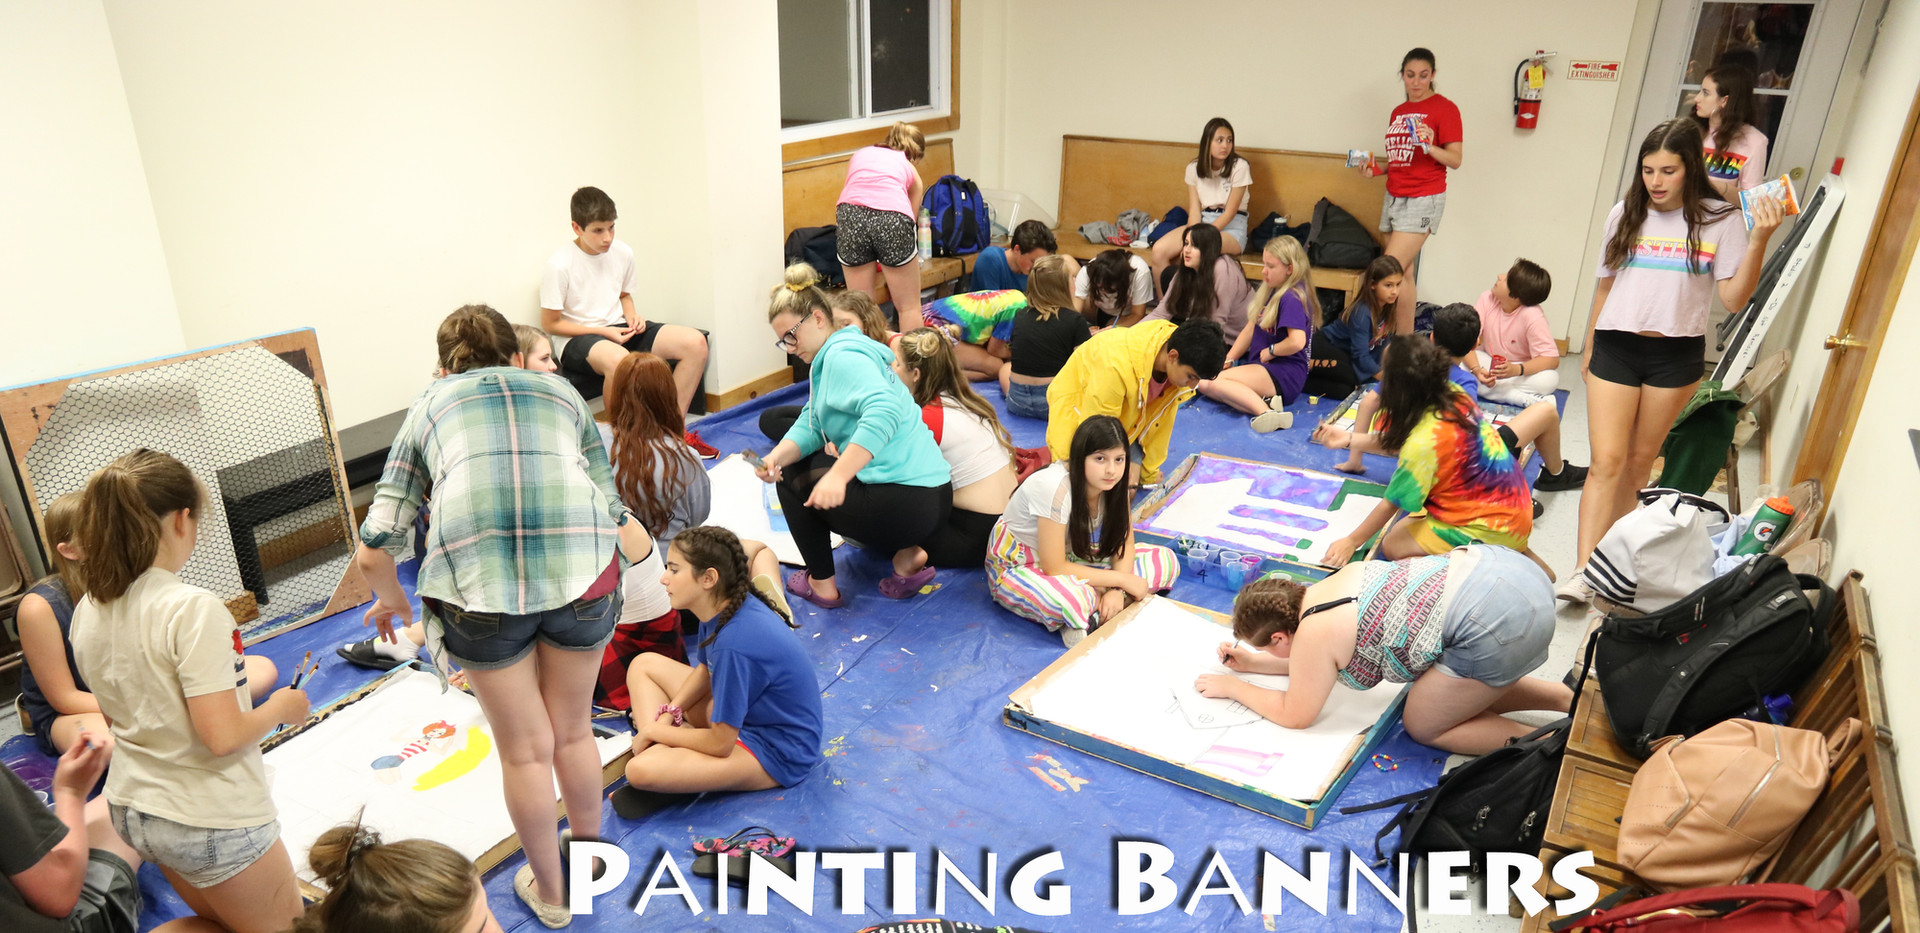 Painting banners